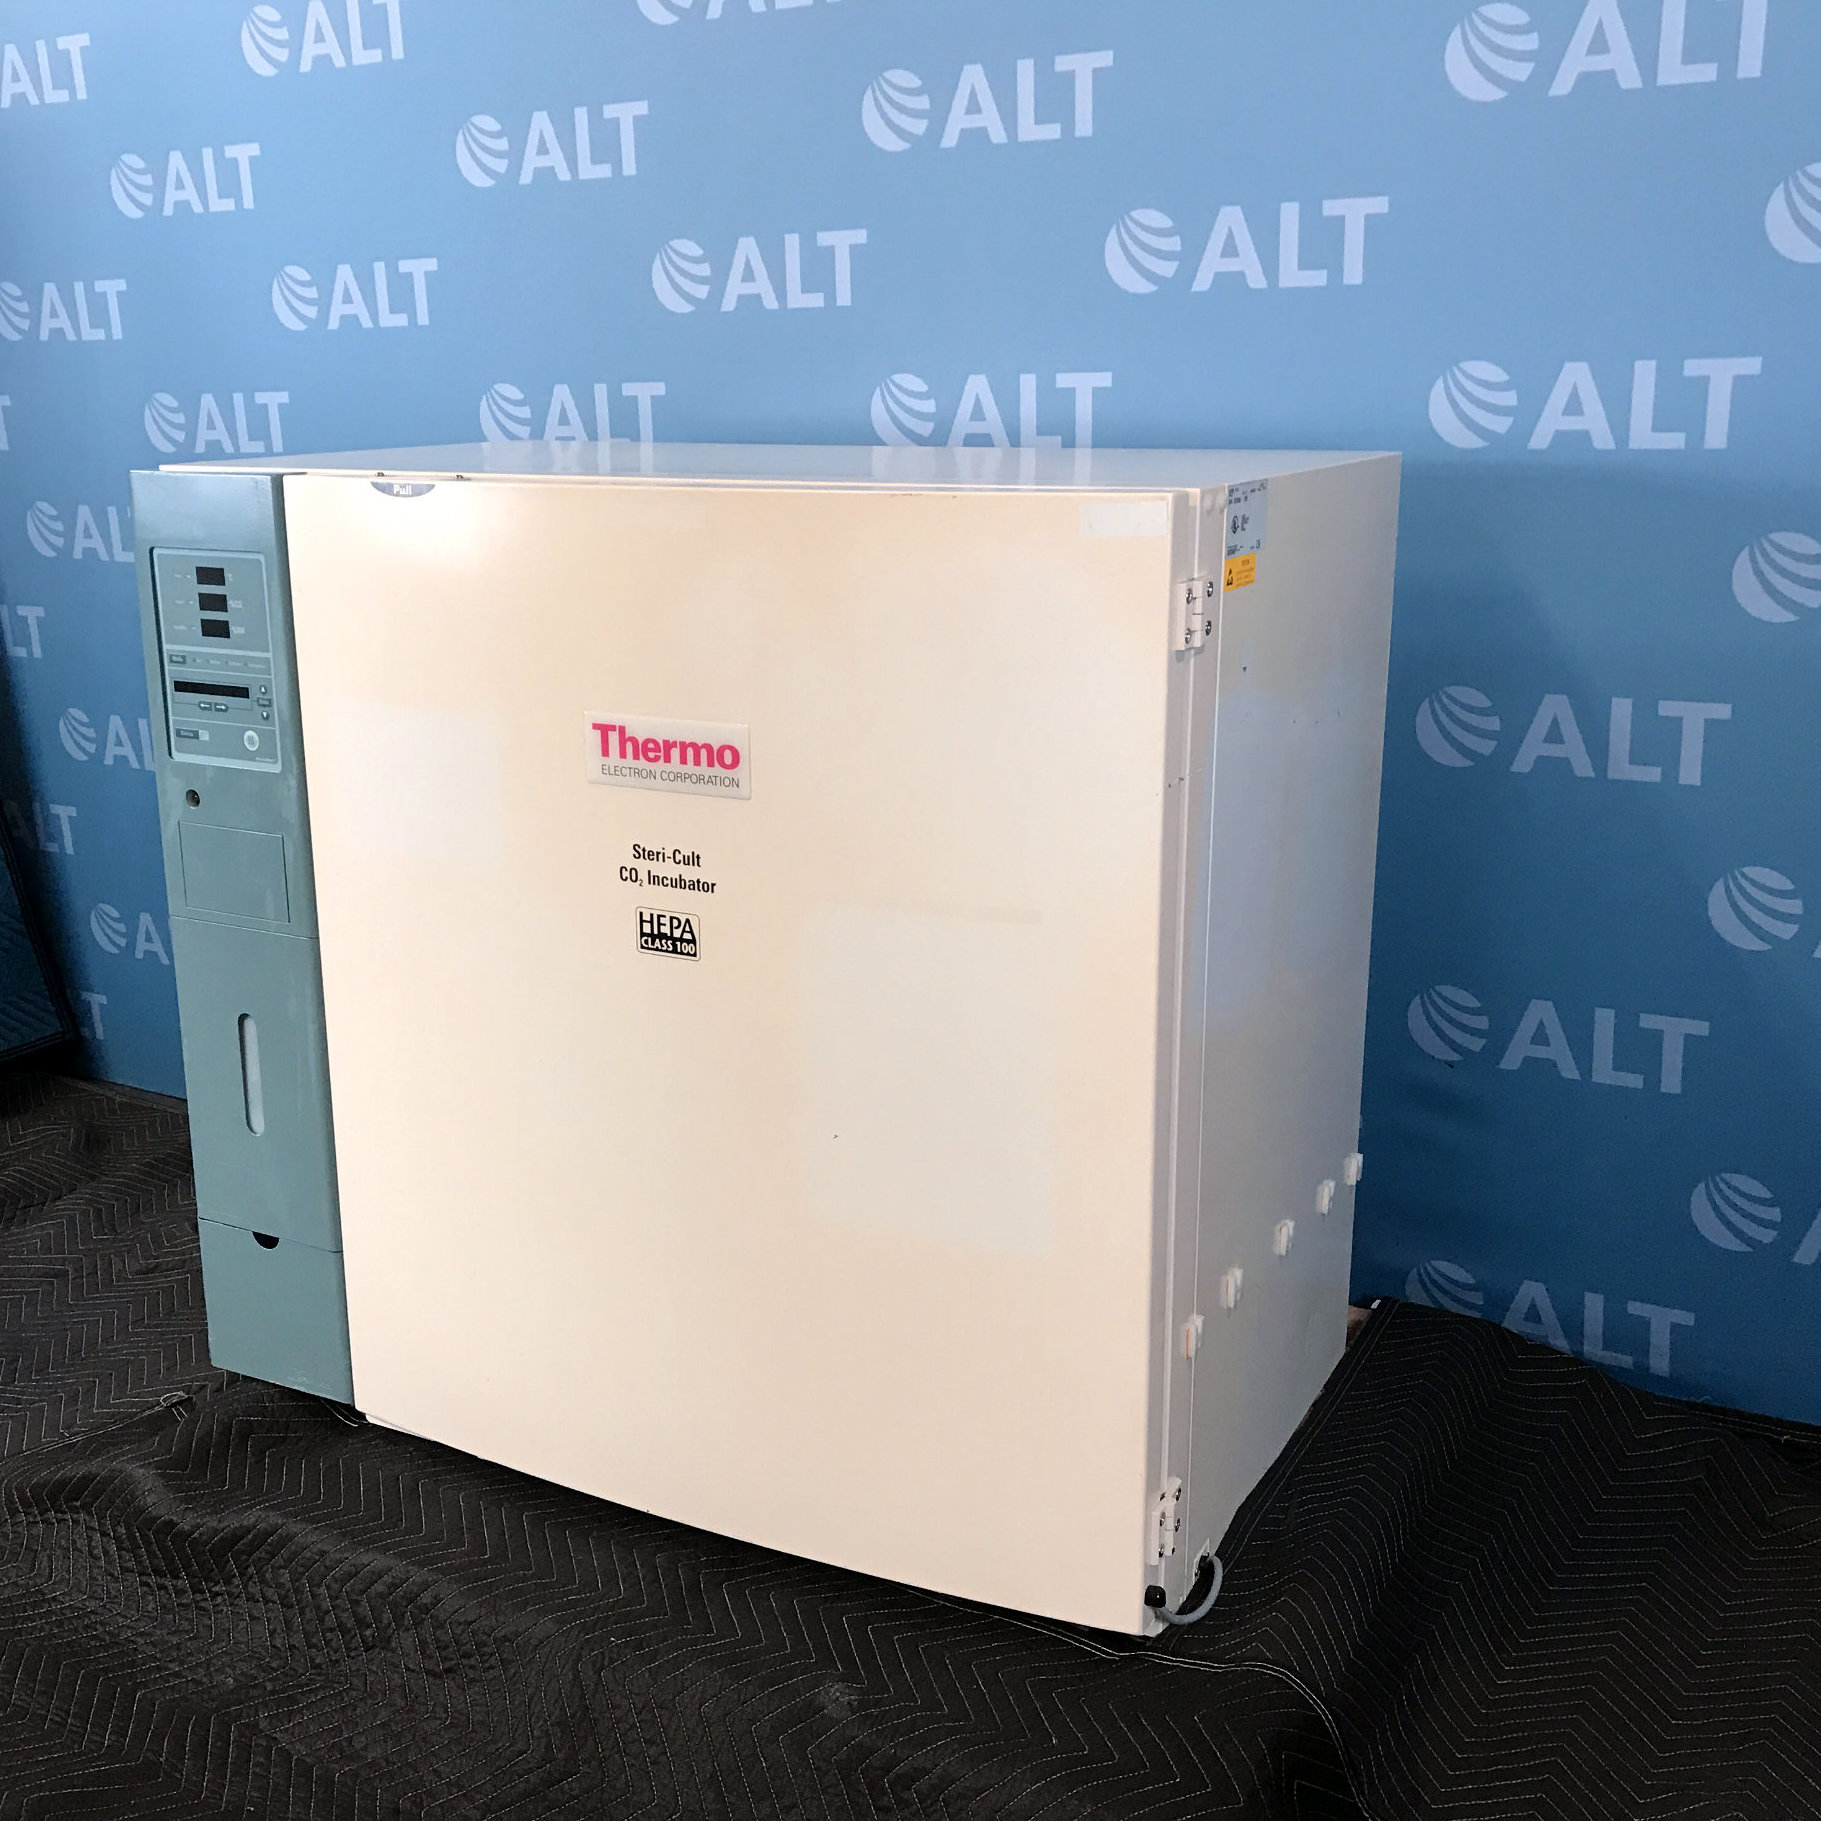 Thermo Electron Corporation 3310 Steri-cult Co2 Incubator Image